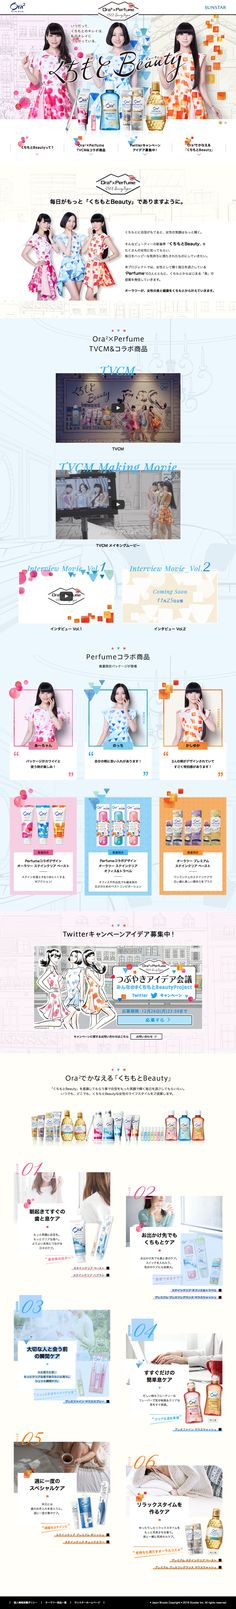 Ora2×Perfume くちもとBeauty Project http://ora2-perfume.com/